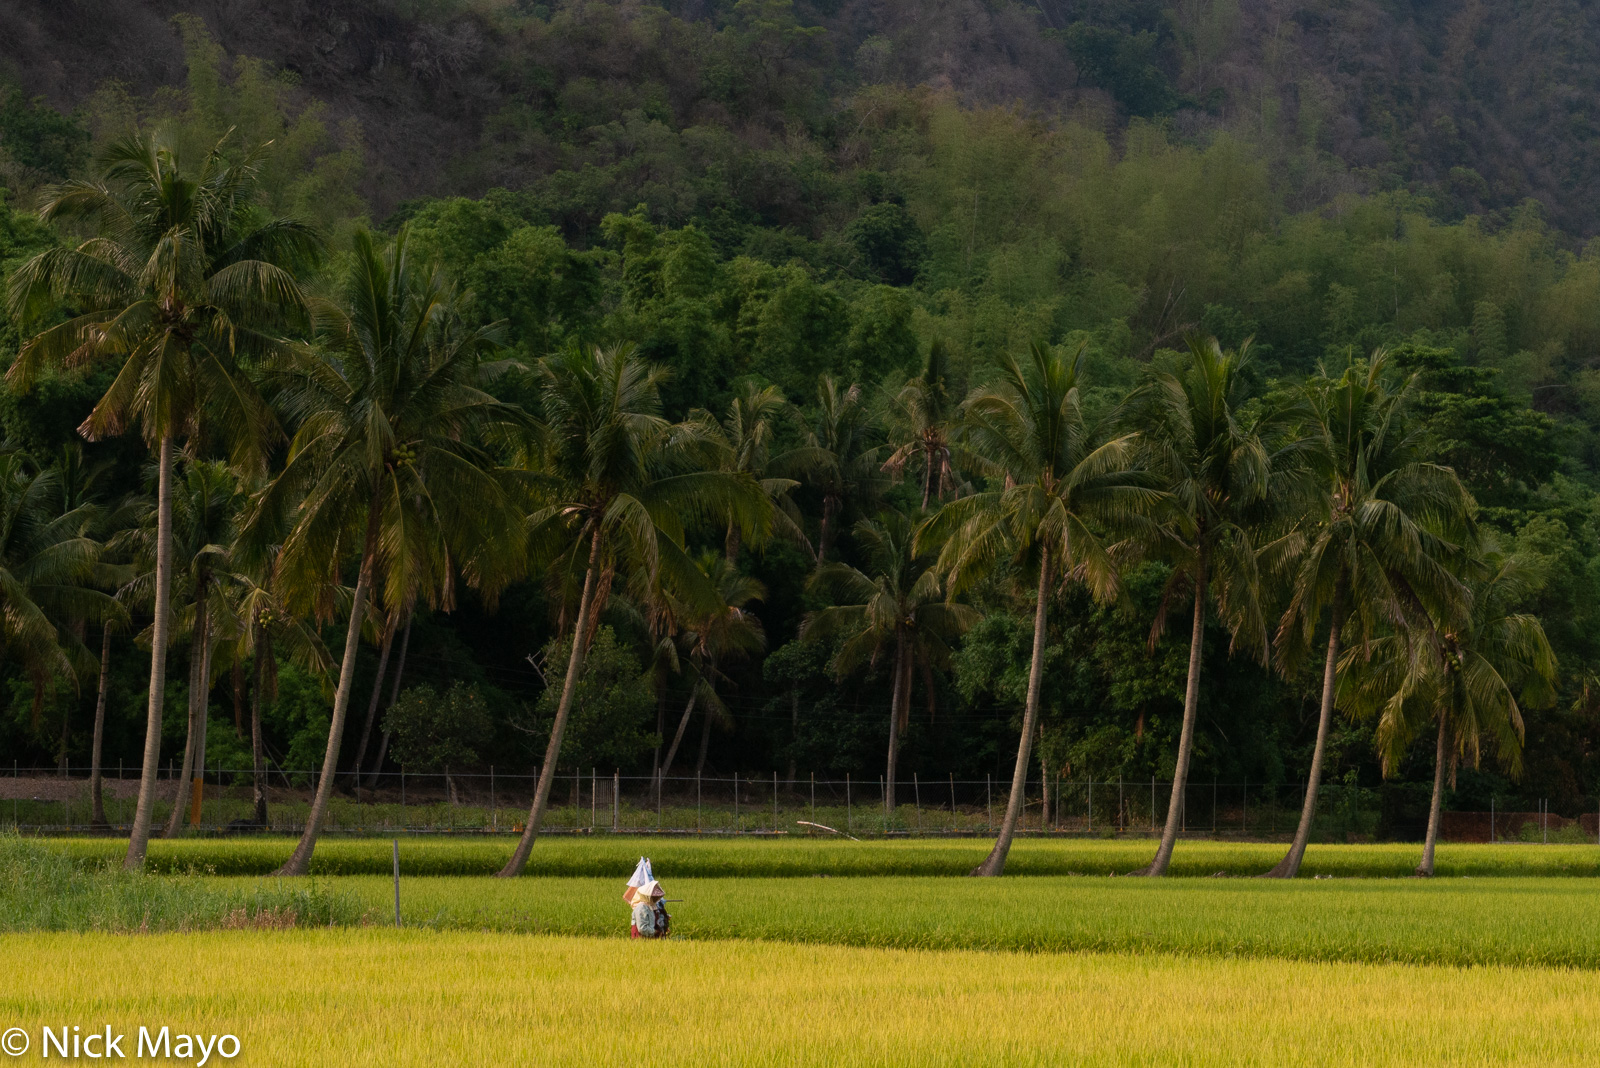 A farmer walking home through coconut palms and paddy rice after a day working in the fields near Meinong.